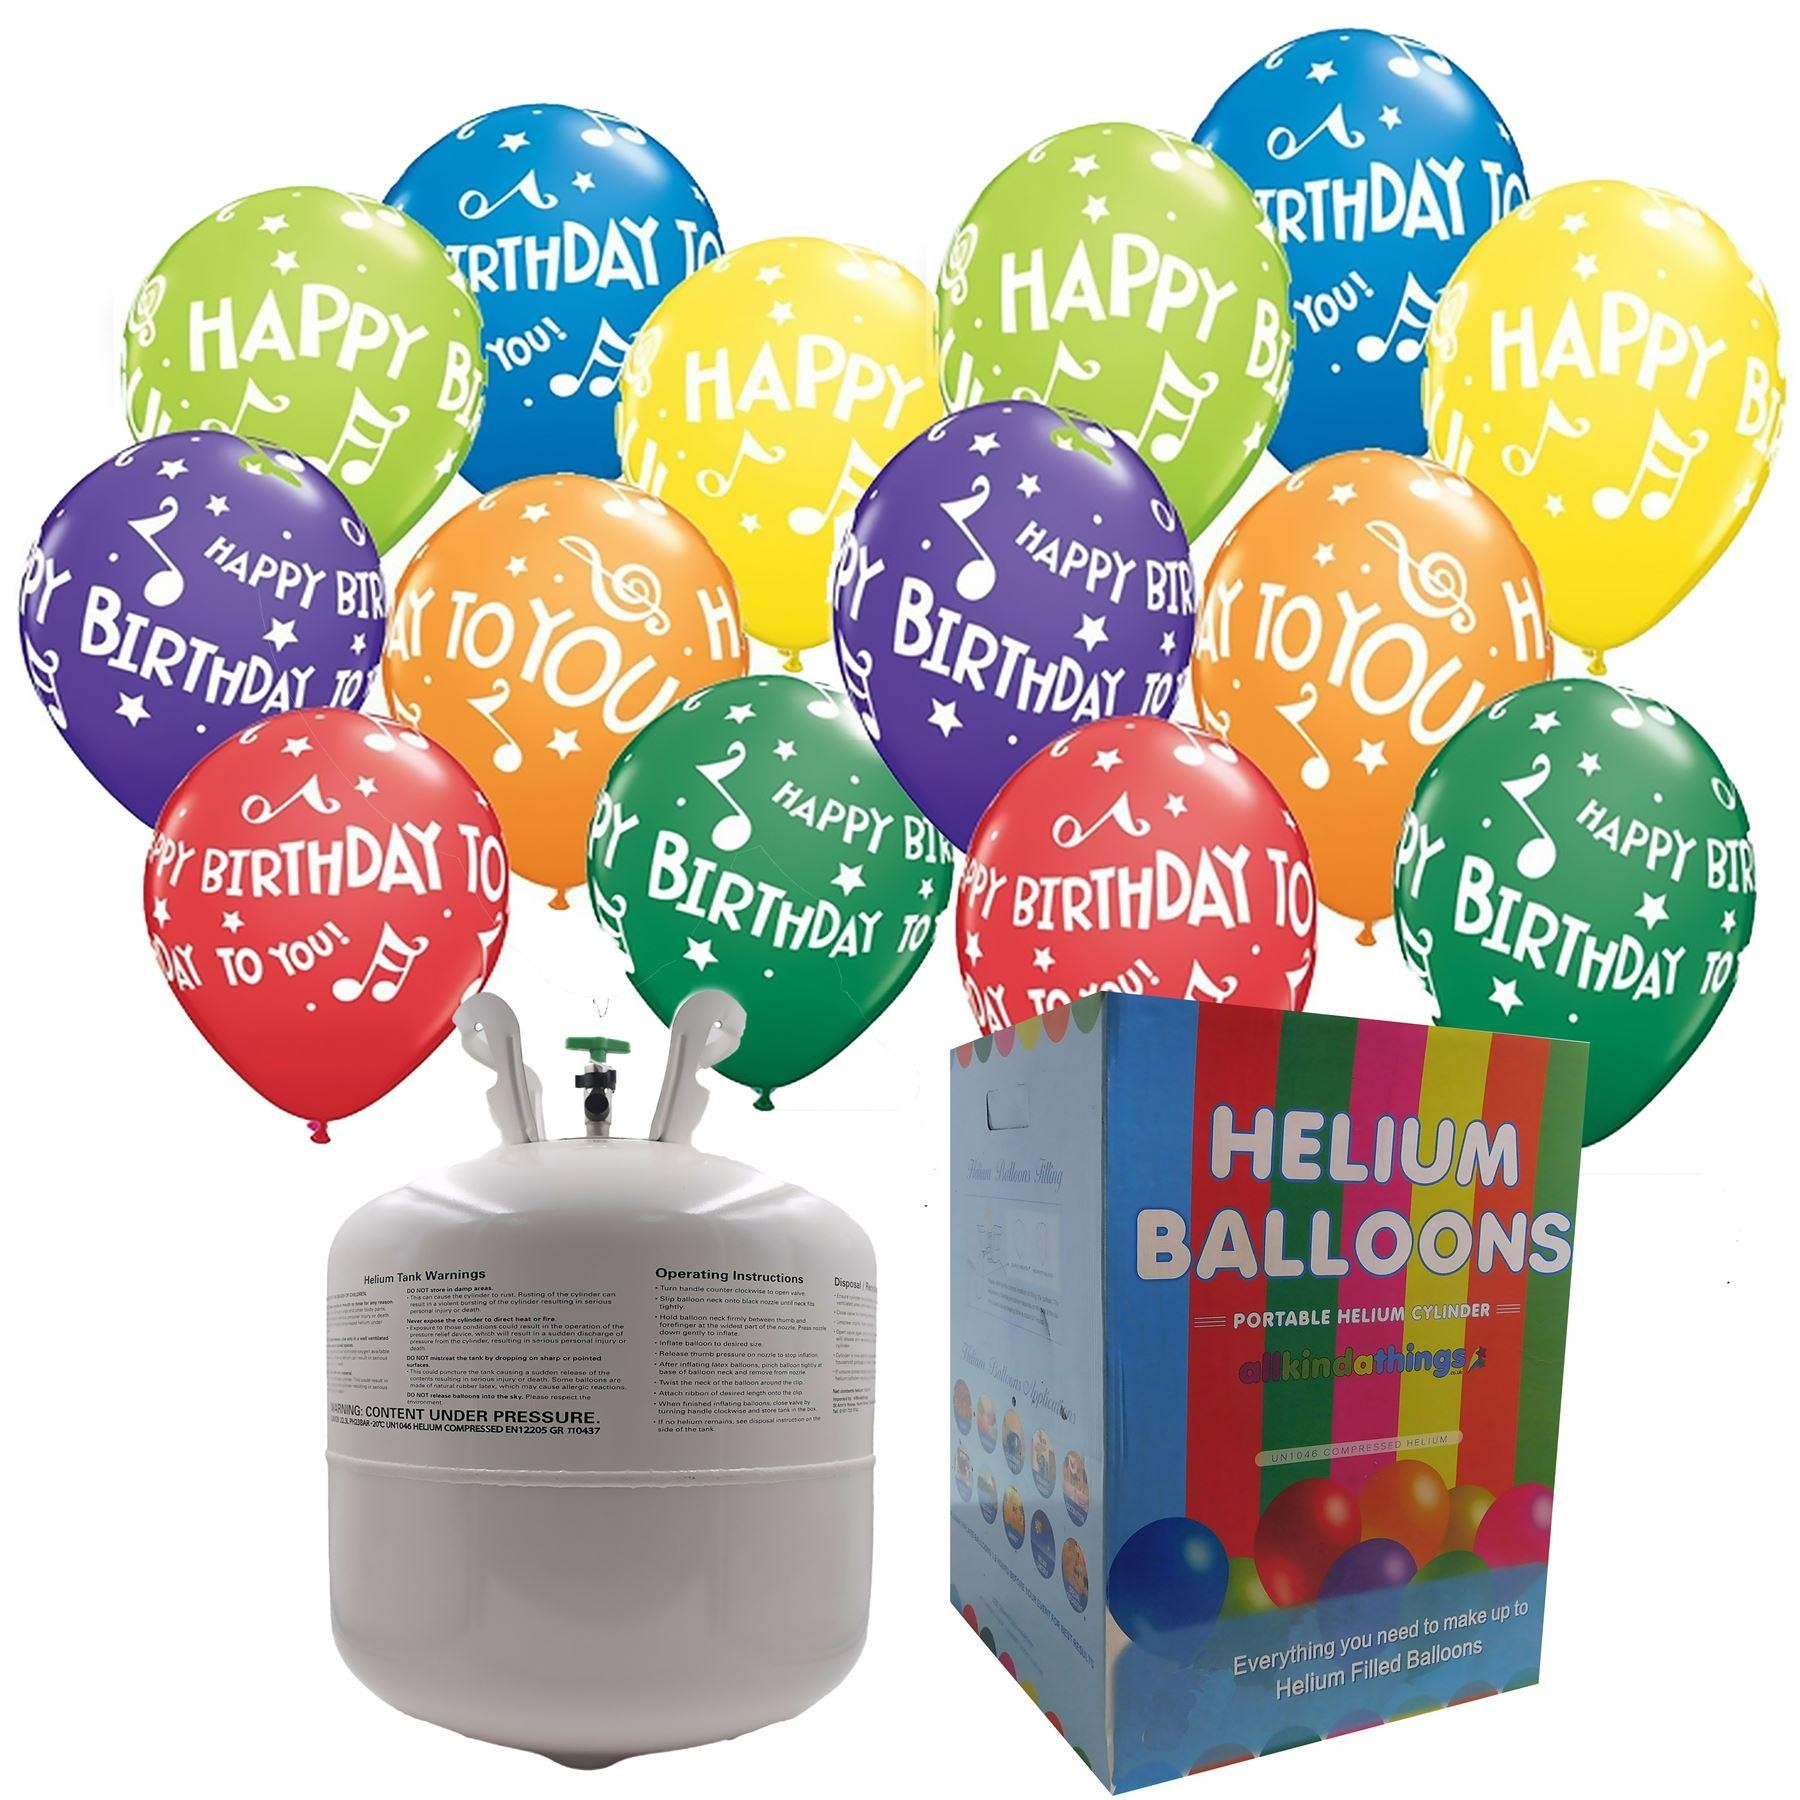 Disposable helium Canister Complete with 25 Birthday balloons And ribbon